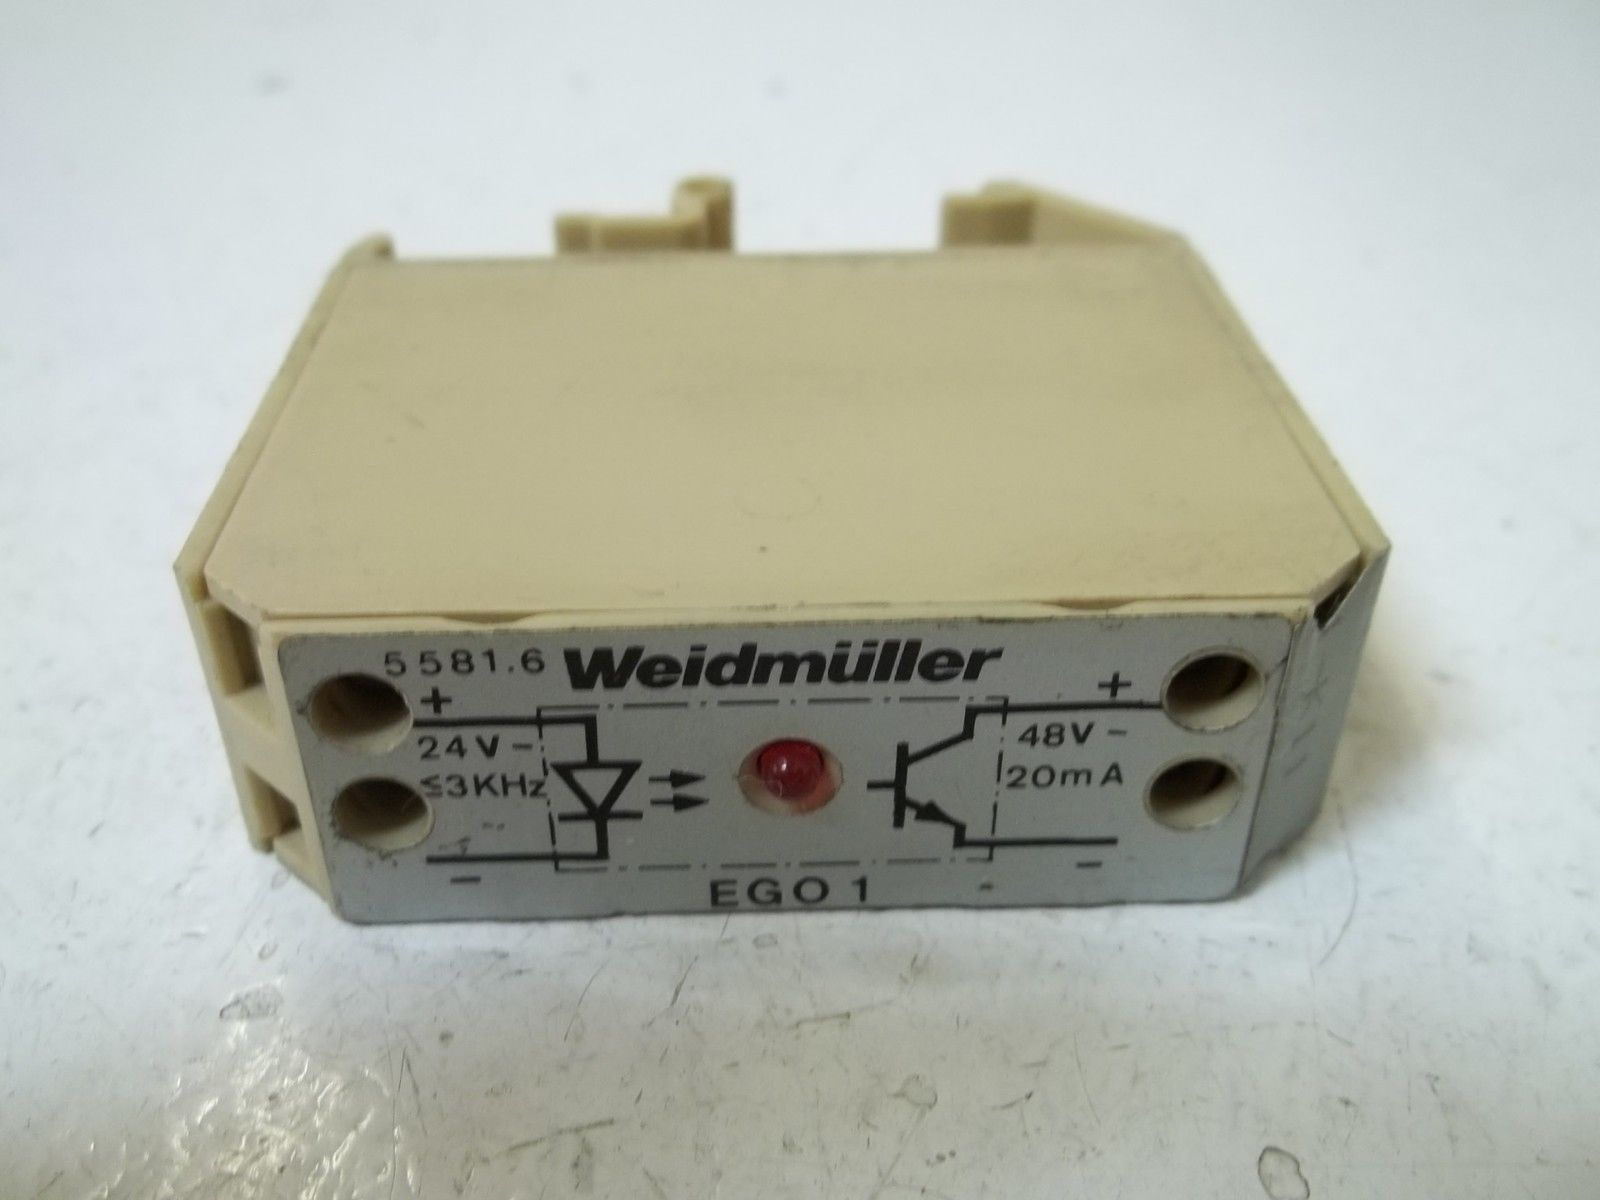 Weidmuller 55816 Ego1 Solid State Relay  Used